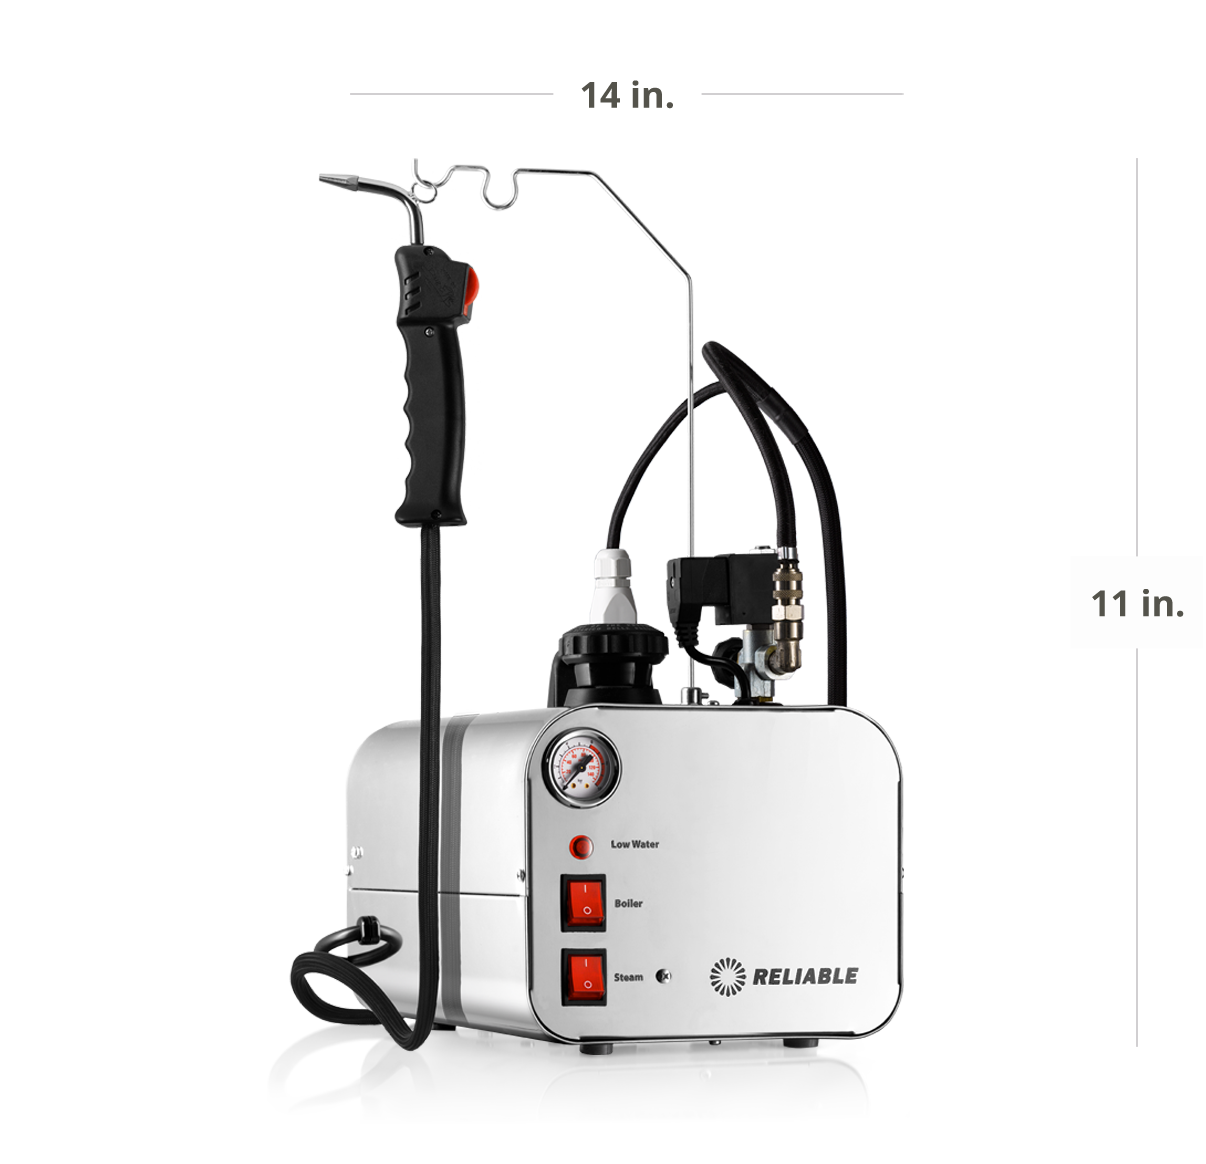 beldray 1000w steam cleaner instructions